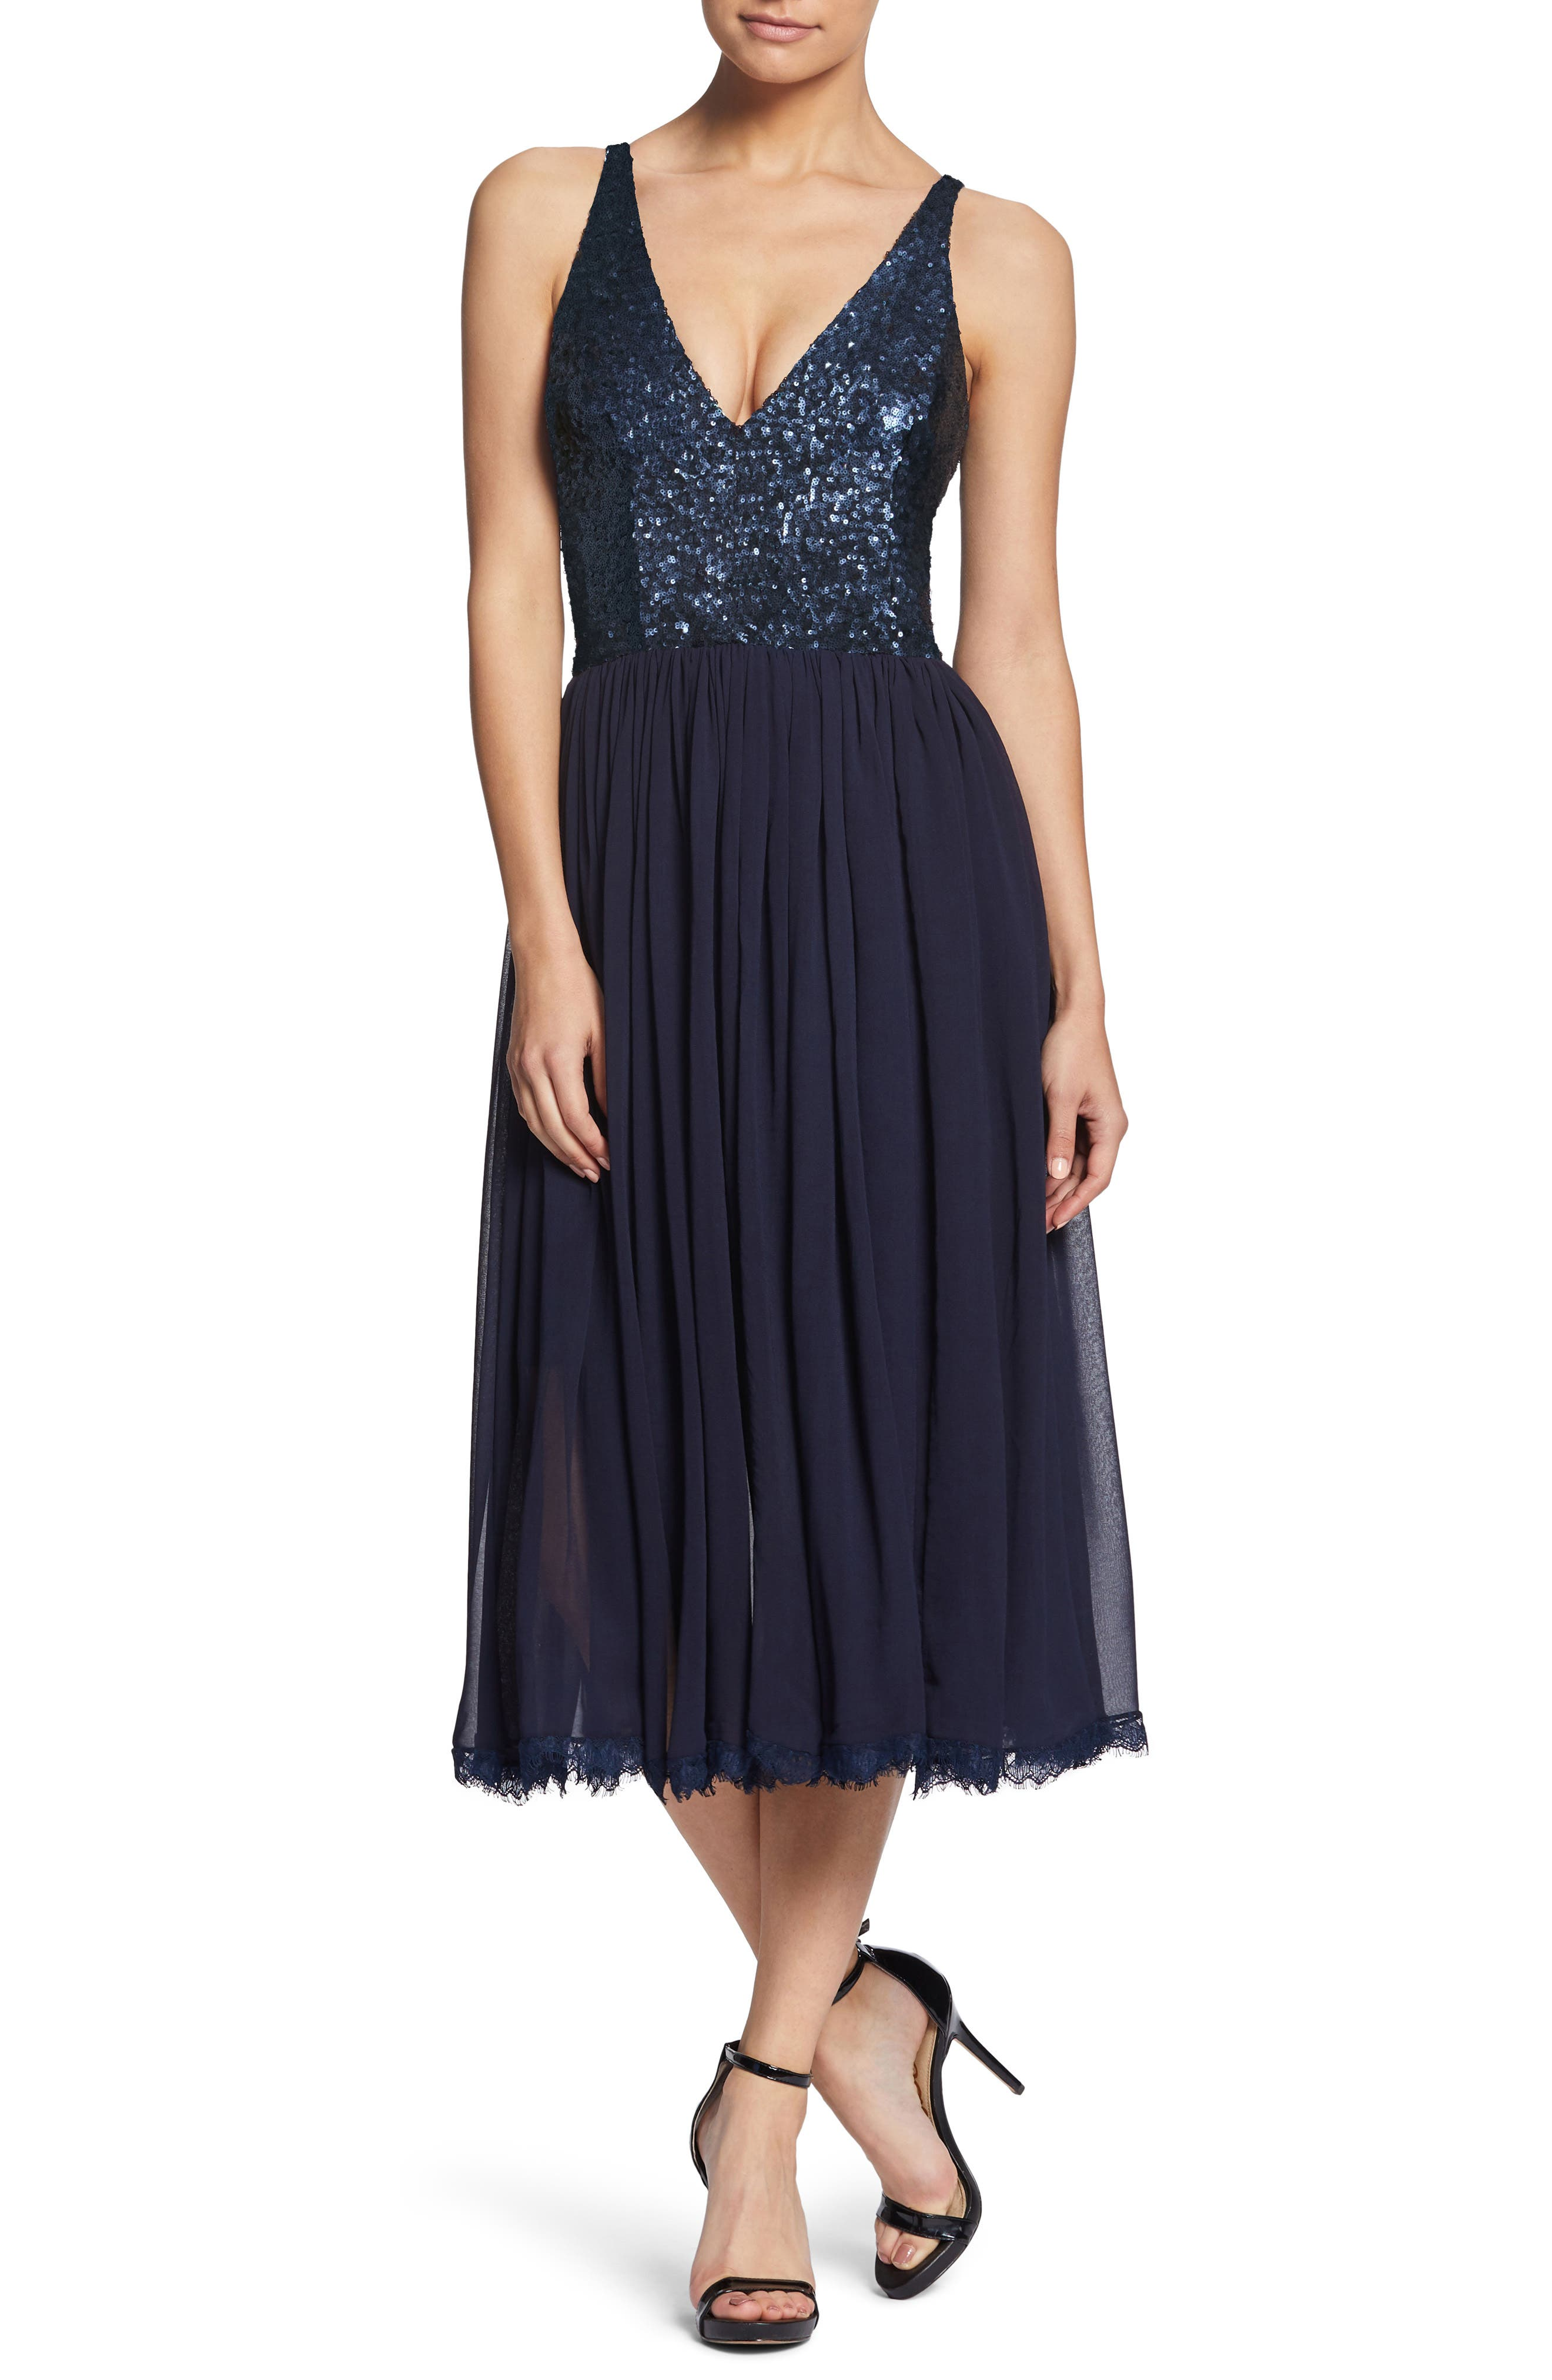 Tracy Plunging Sequin Bodice Tea Length Dress,                             Main thumbnail 1, color,                             Navy